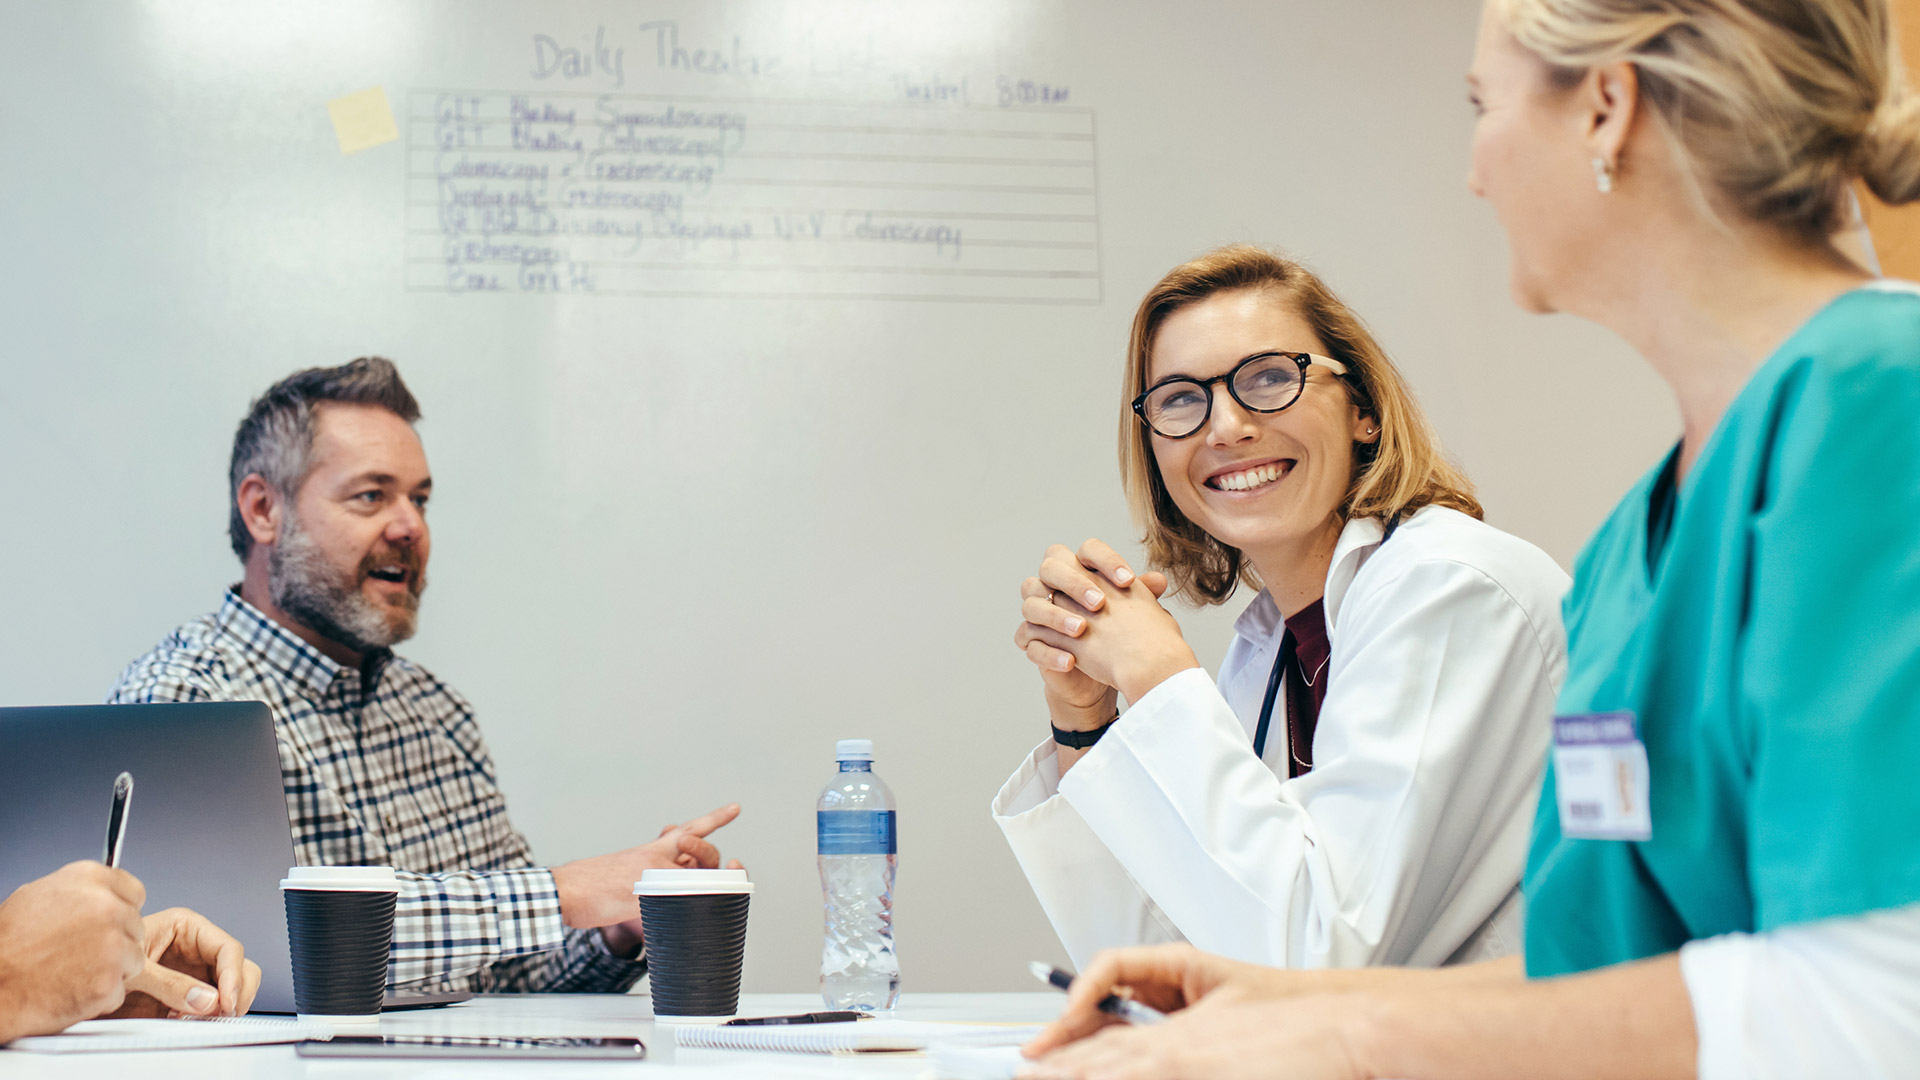 hiring a medical marketing agency to grow your practice